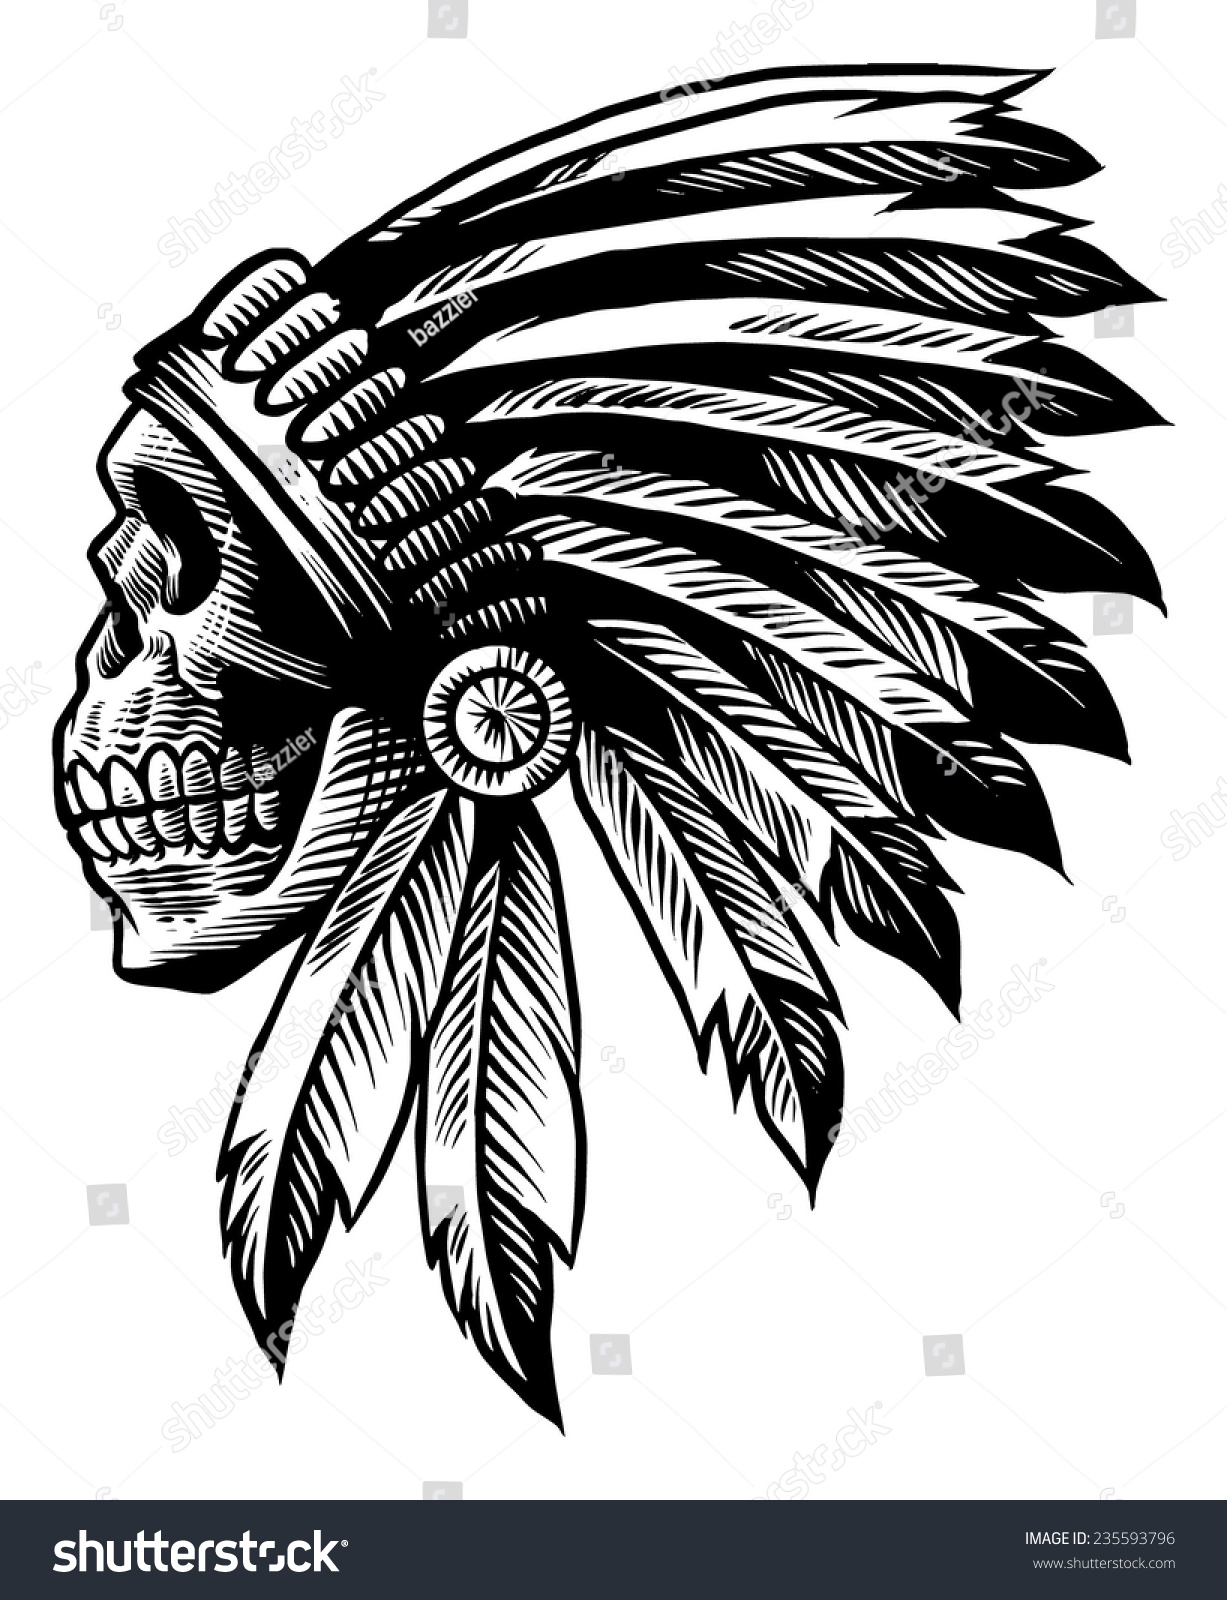 Uncategorized Indian Drawing royalty free skull indian chief in hand drawing style 235593796 stock vector